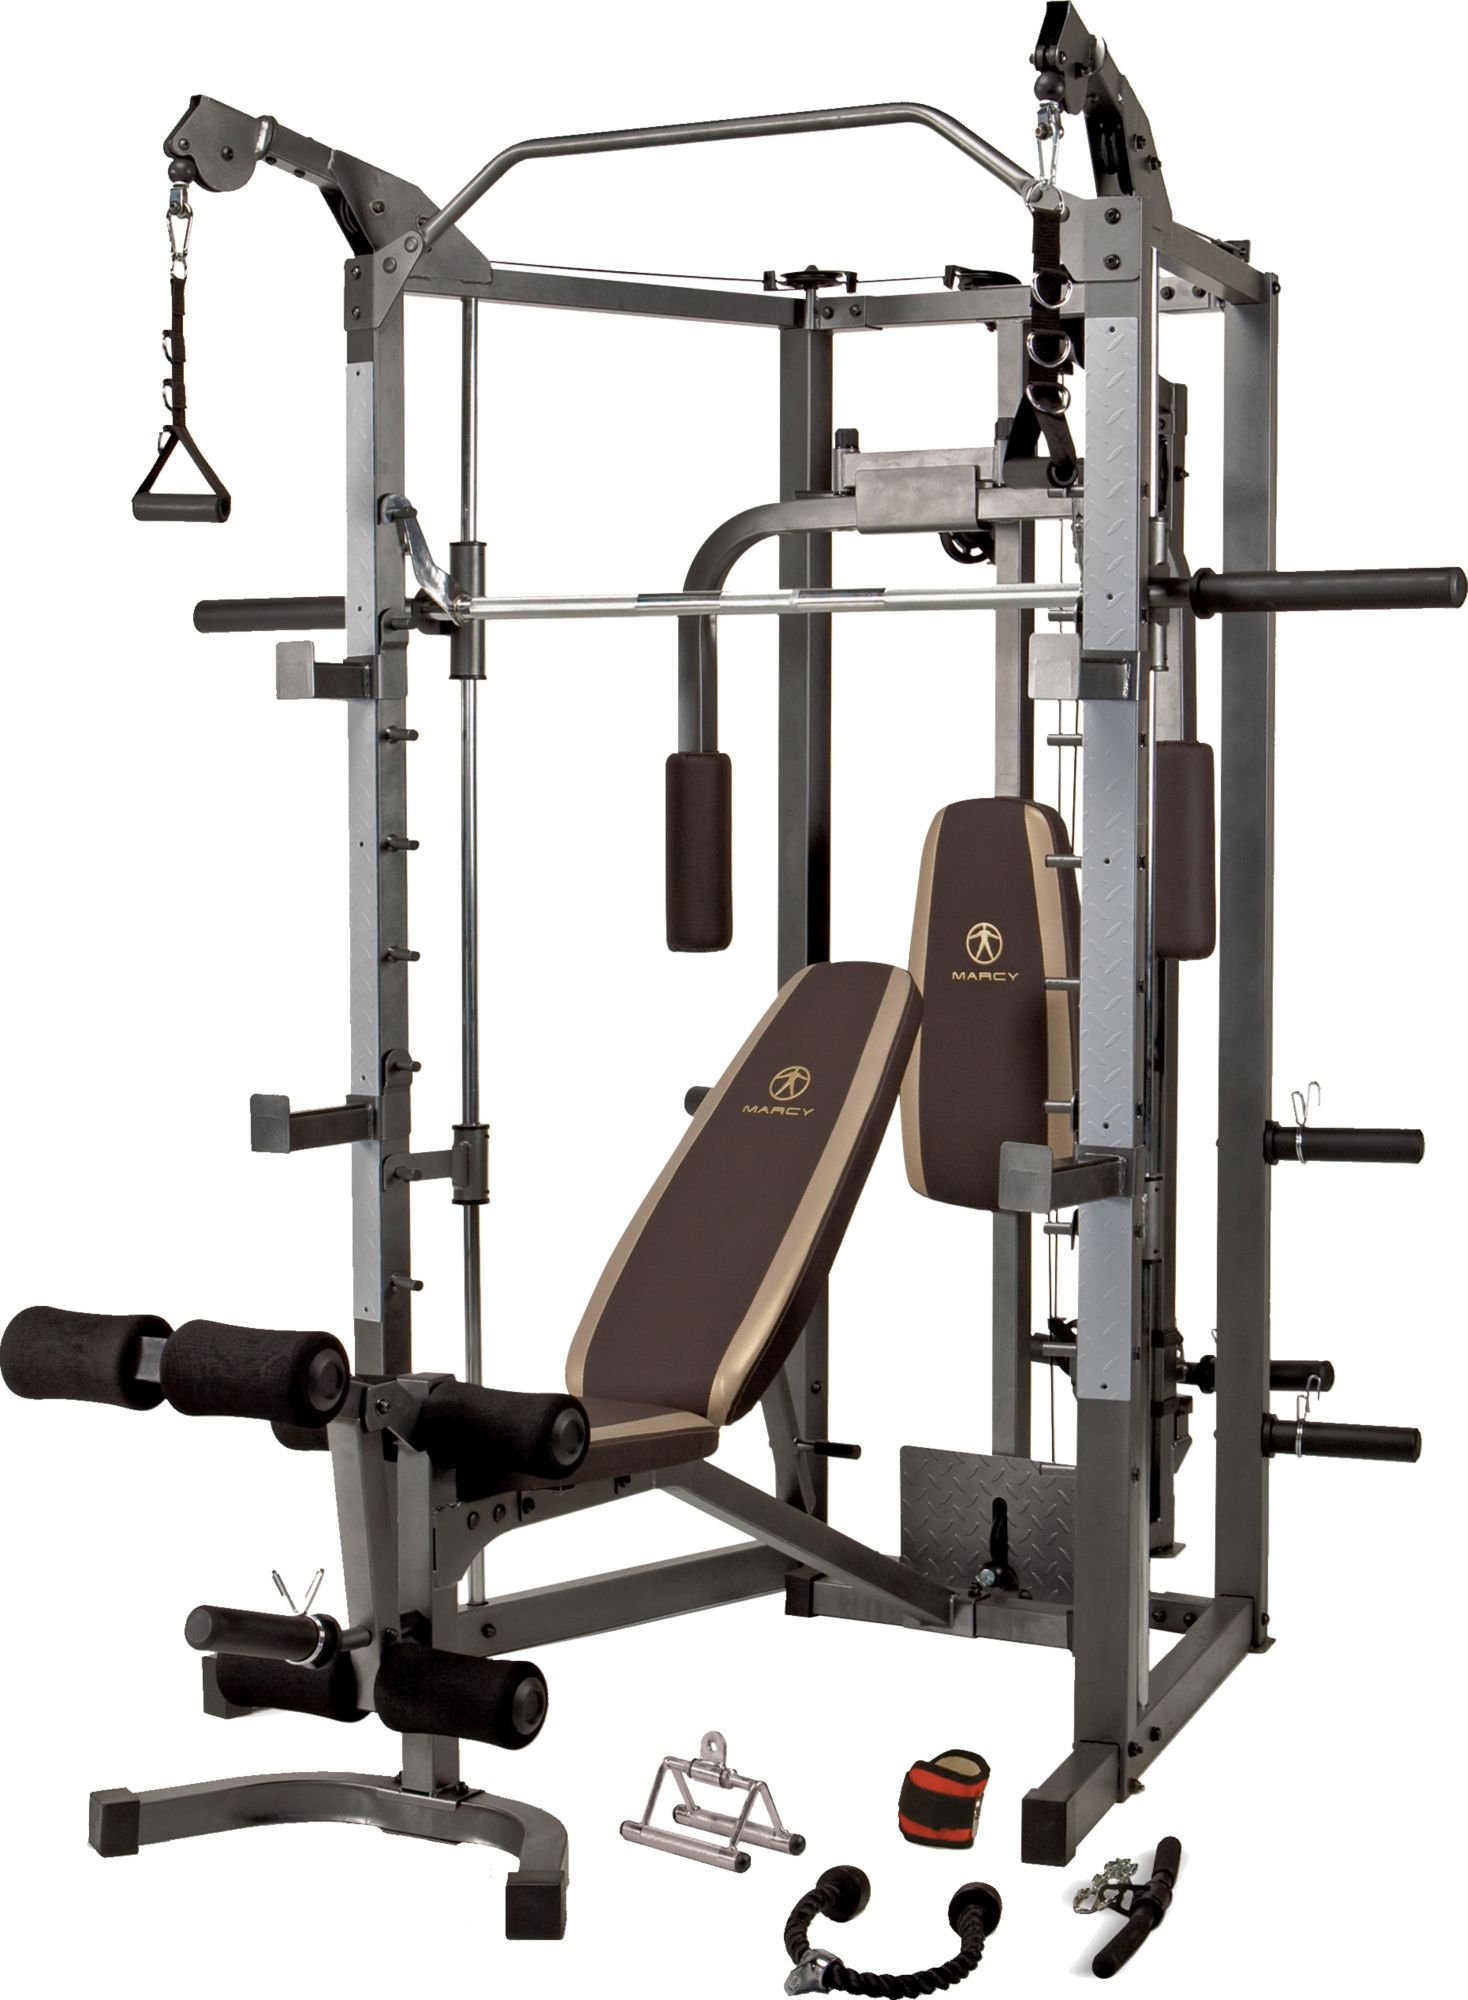 Marcy Combo Smith Machine At home gym, Home gym machine